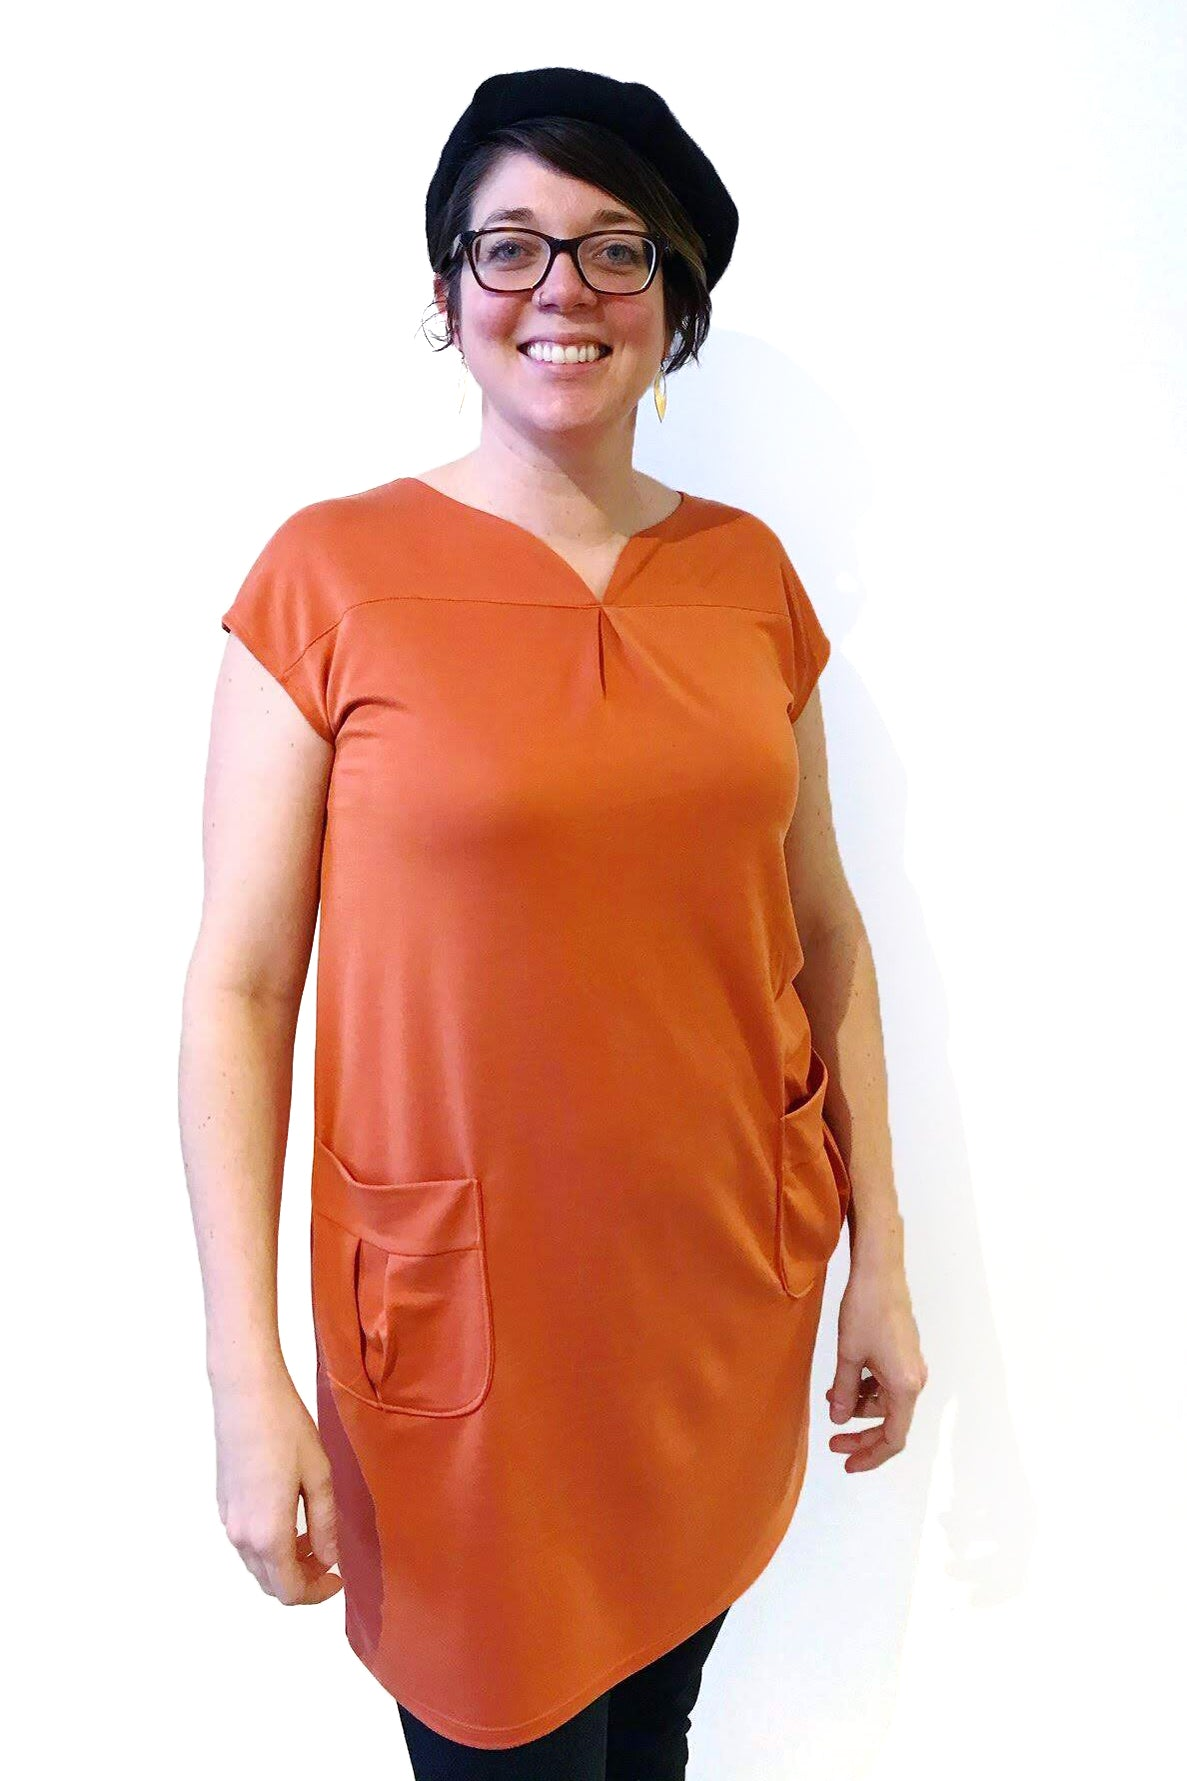 Harya Dress by Moovment, Tangerine, cap sleeves, notched neckline, patch pockets, modal, sizes XS-XXL, made in Quebec